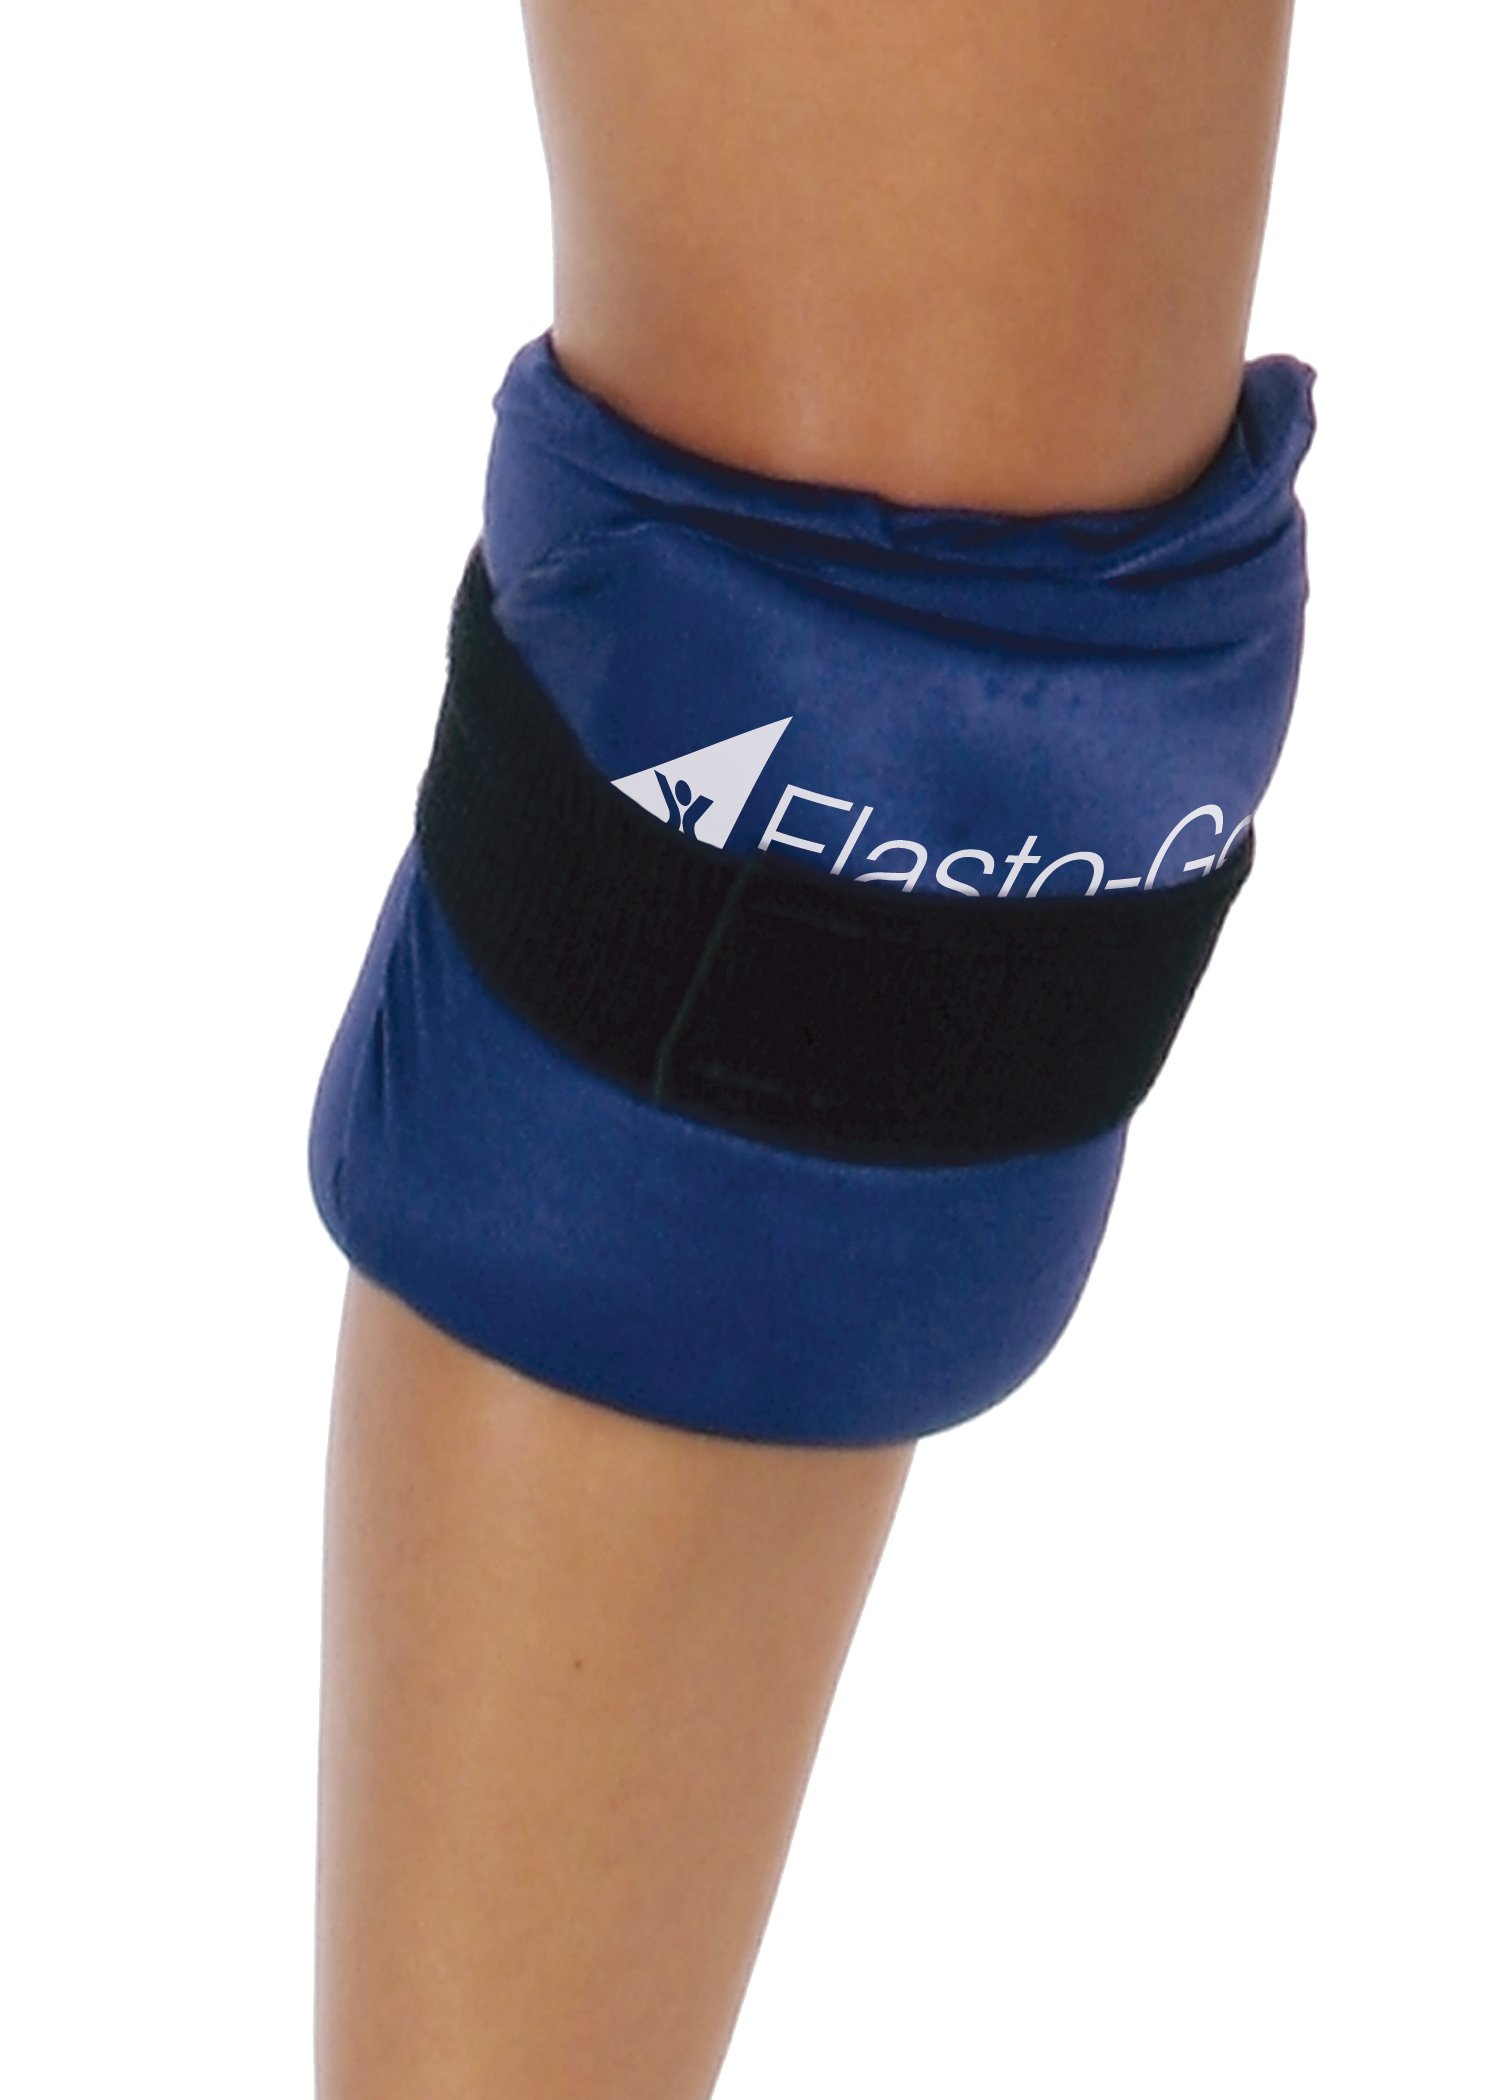 SPECIAL PACK OF 3-Elasto Gel Hot / Cold Therapy Wrap 6 x30 by Marble Medical